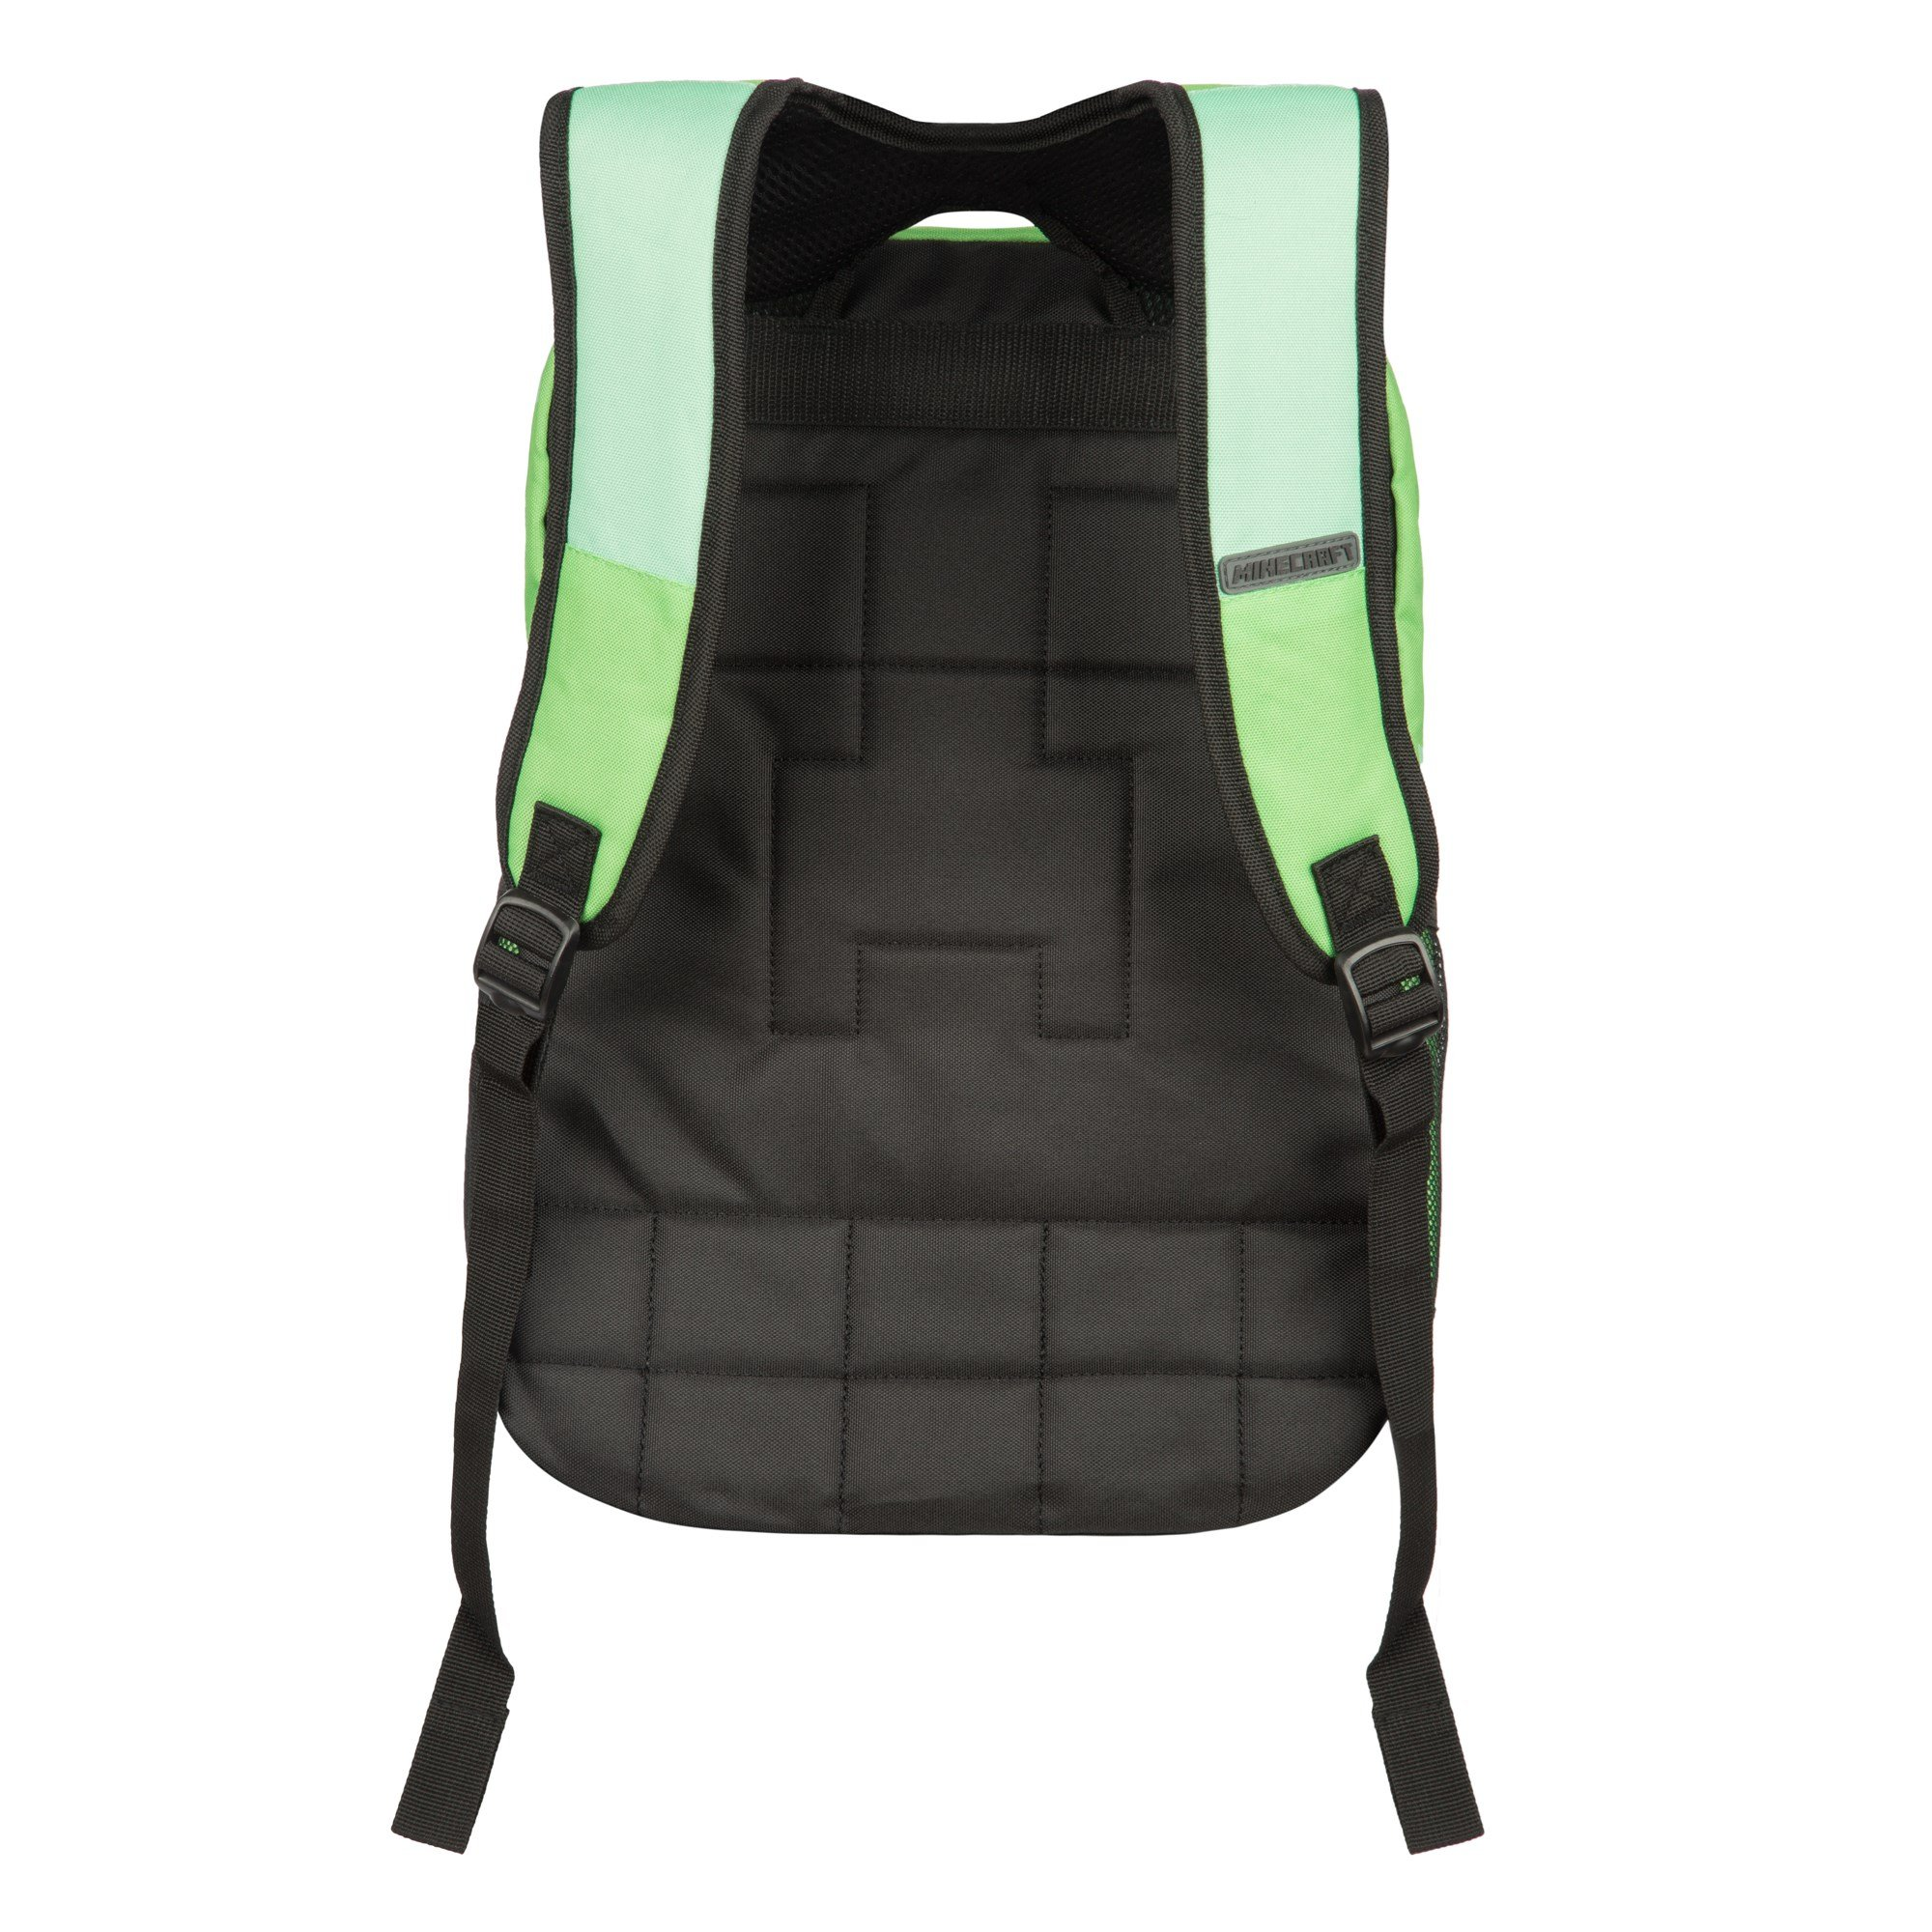 JINX Minecraft Creeper Kids Backpack (Green, 18'') for School, Camping, Travel, Outdoors & Fun by JINX (Image #4)